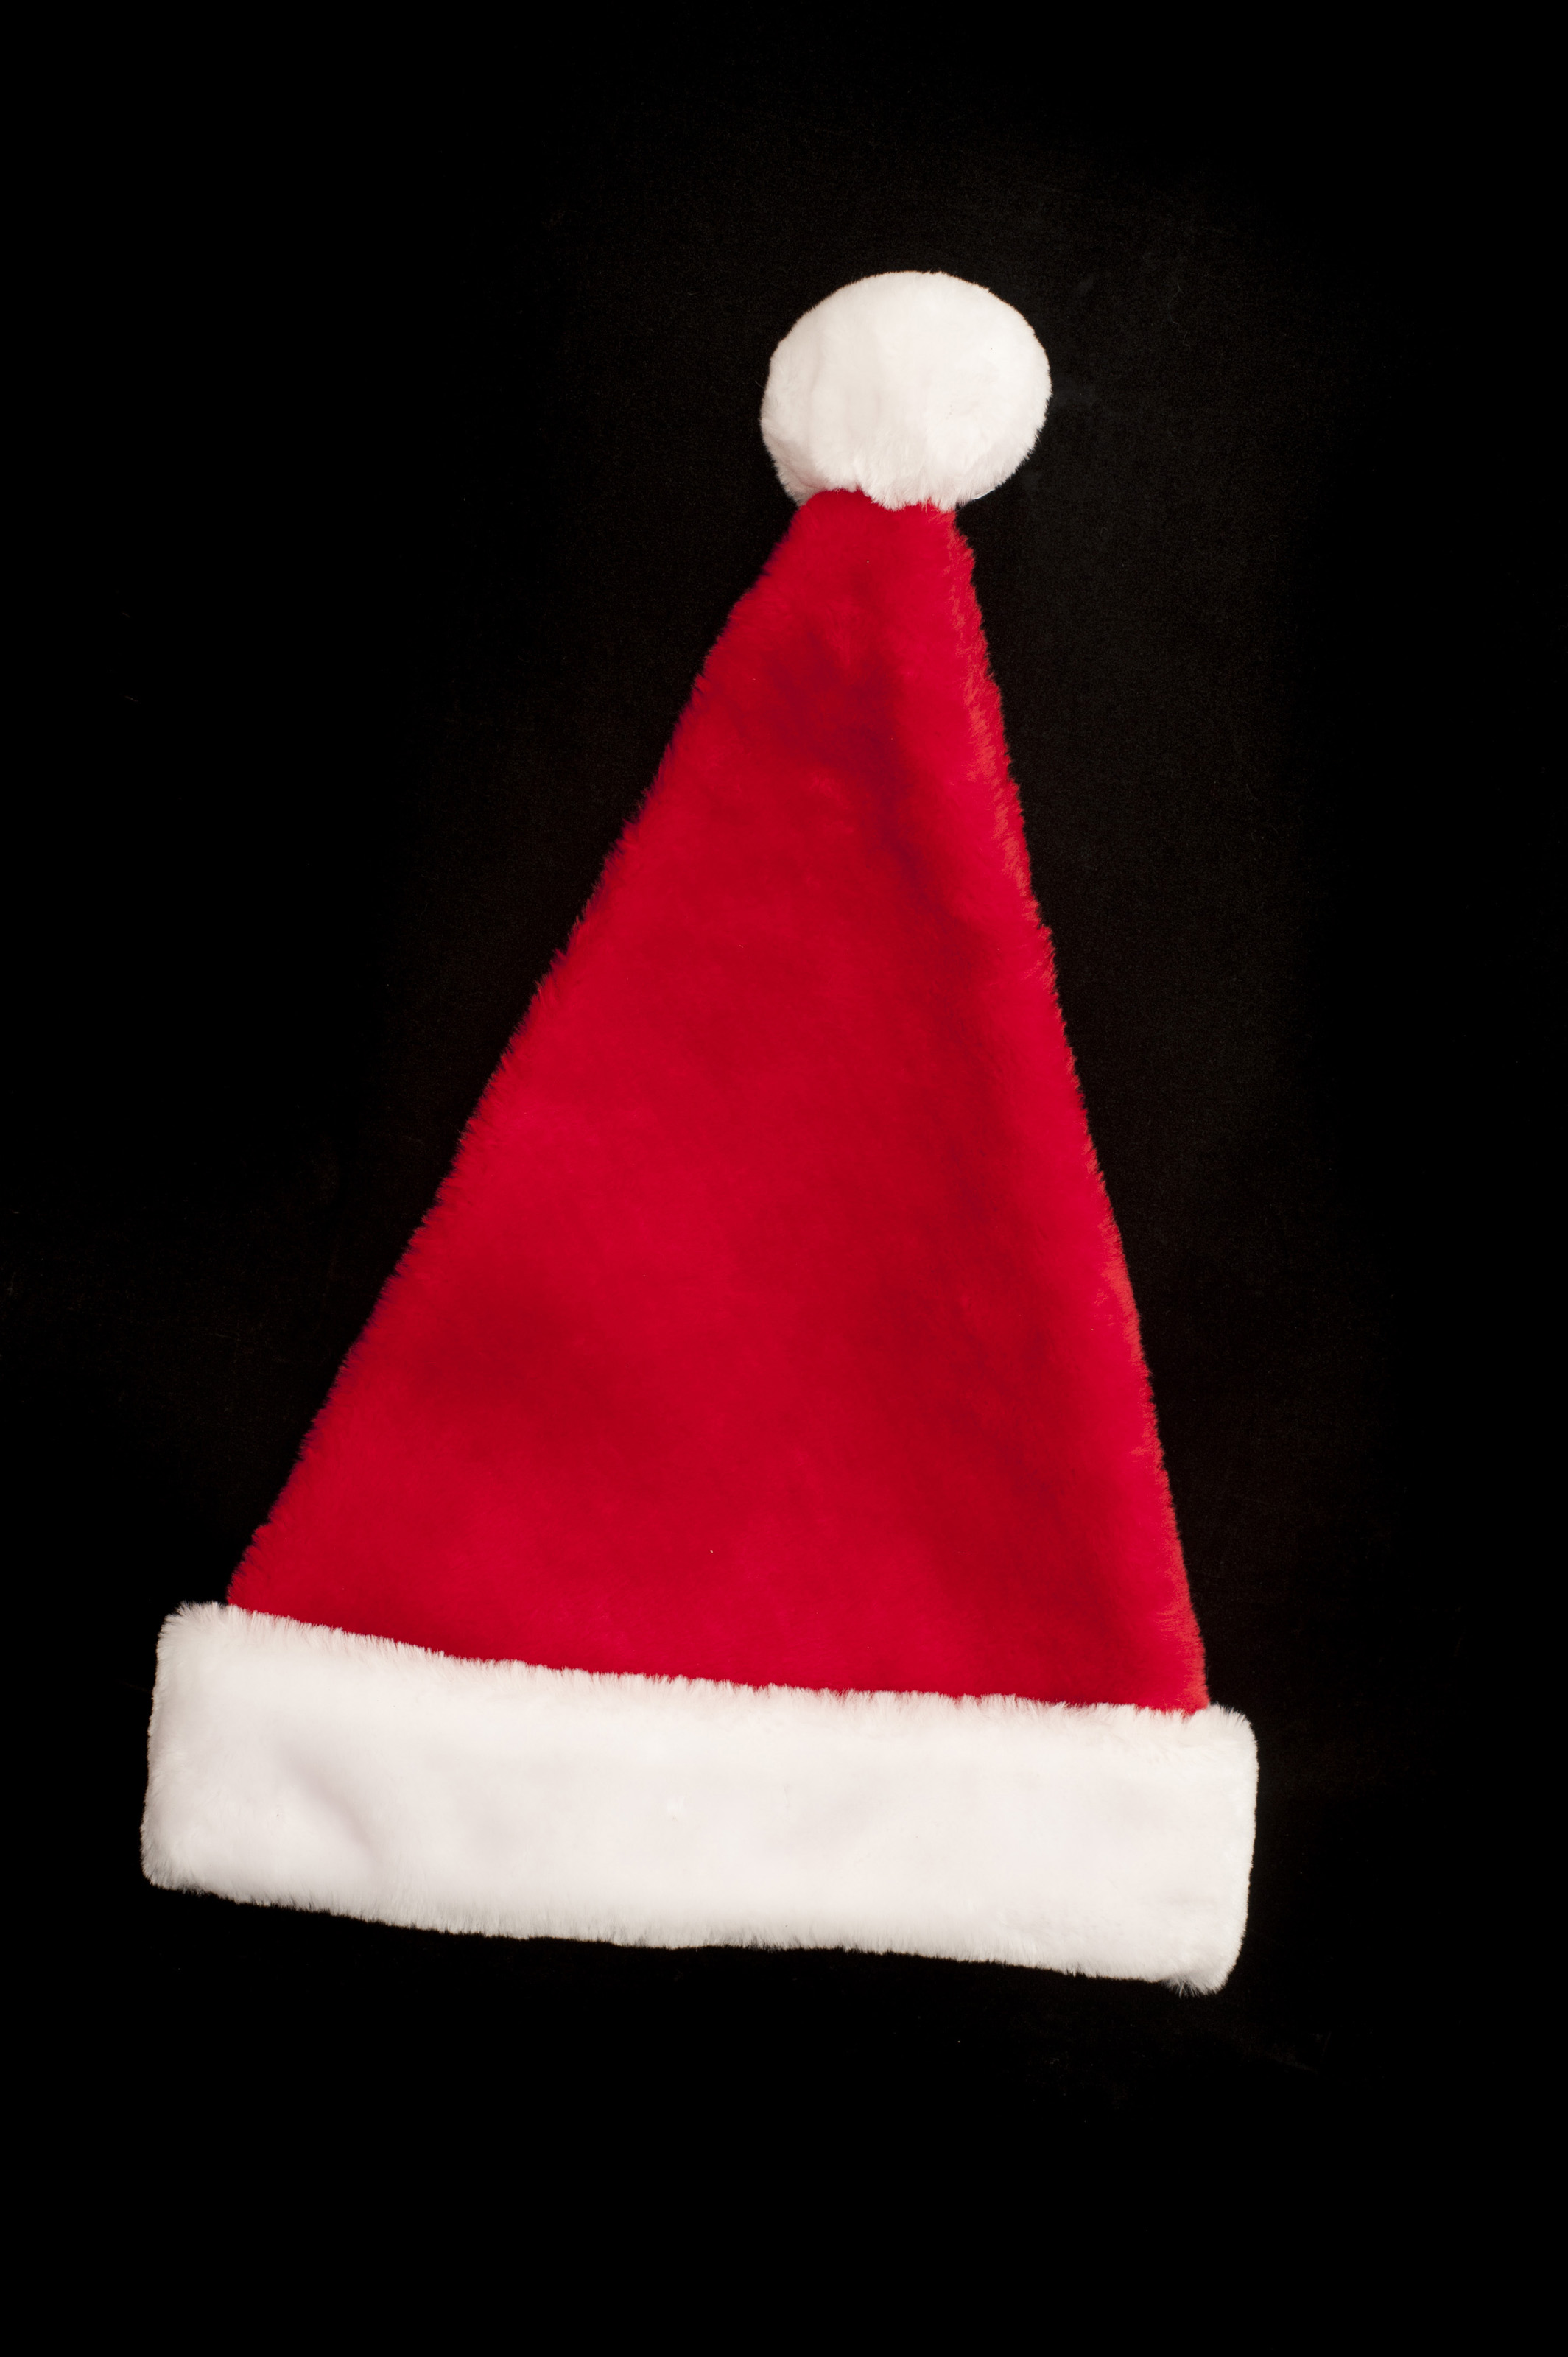 free stock photo 10568 red and white christmas hat on black